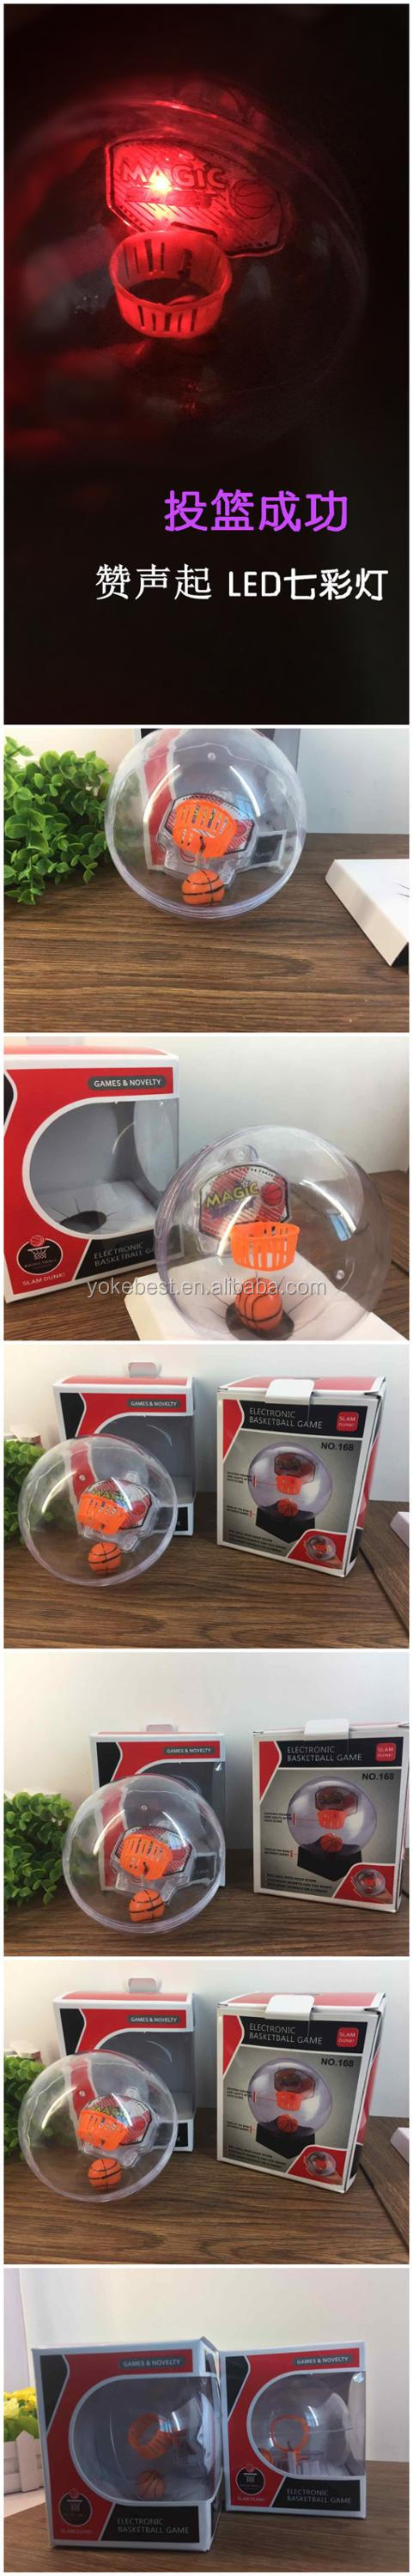 UCHOME Hot Electronic Mini Handheld Basketball/Rock Ball Handheld Toy Basketball Machines